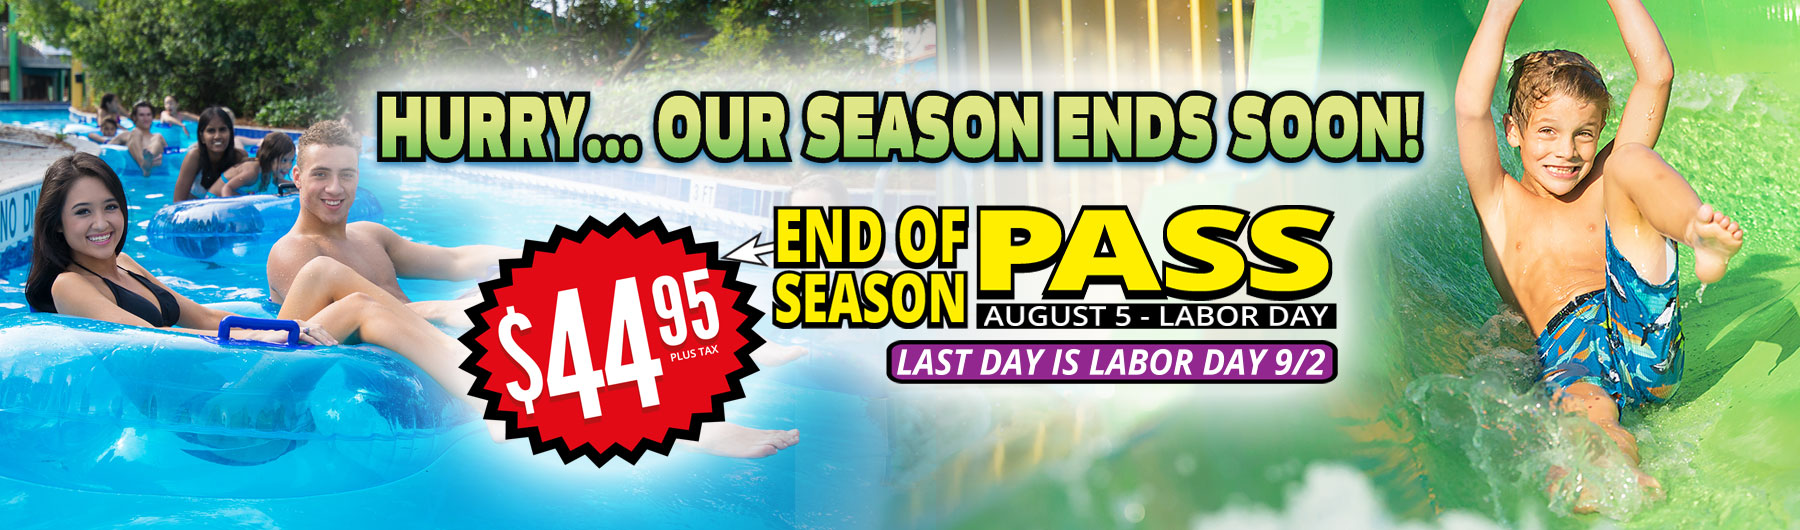 endofseasonpass